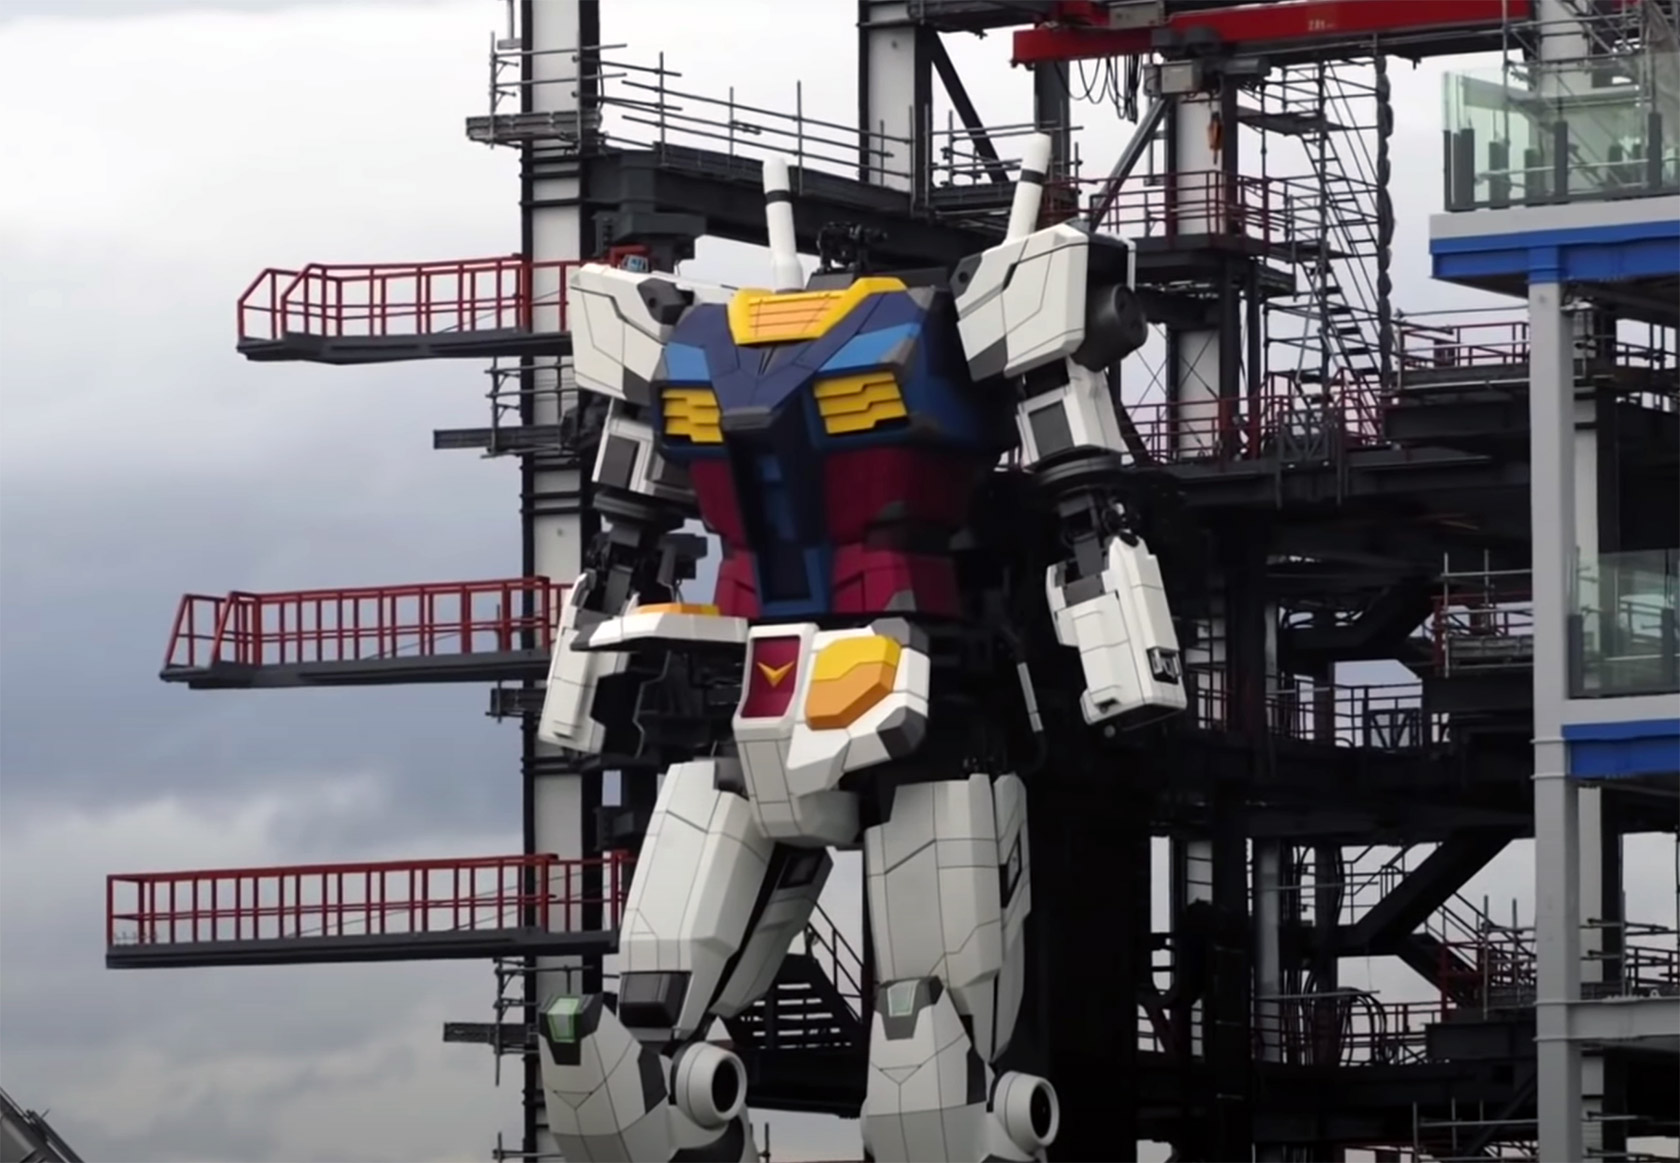 Life-Sized Gundam Robot Japan Steps